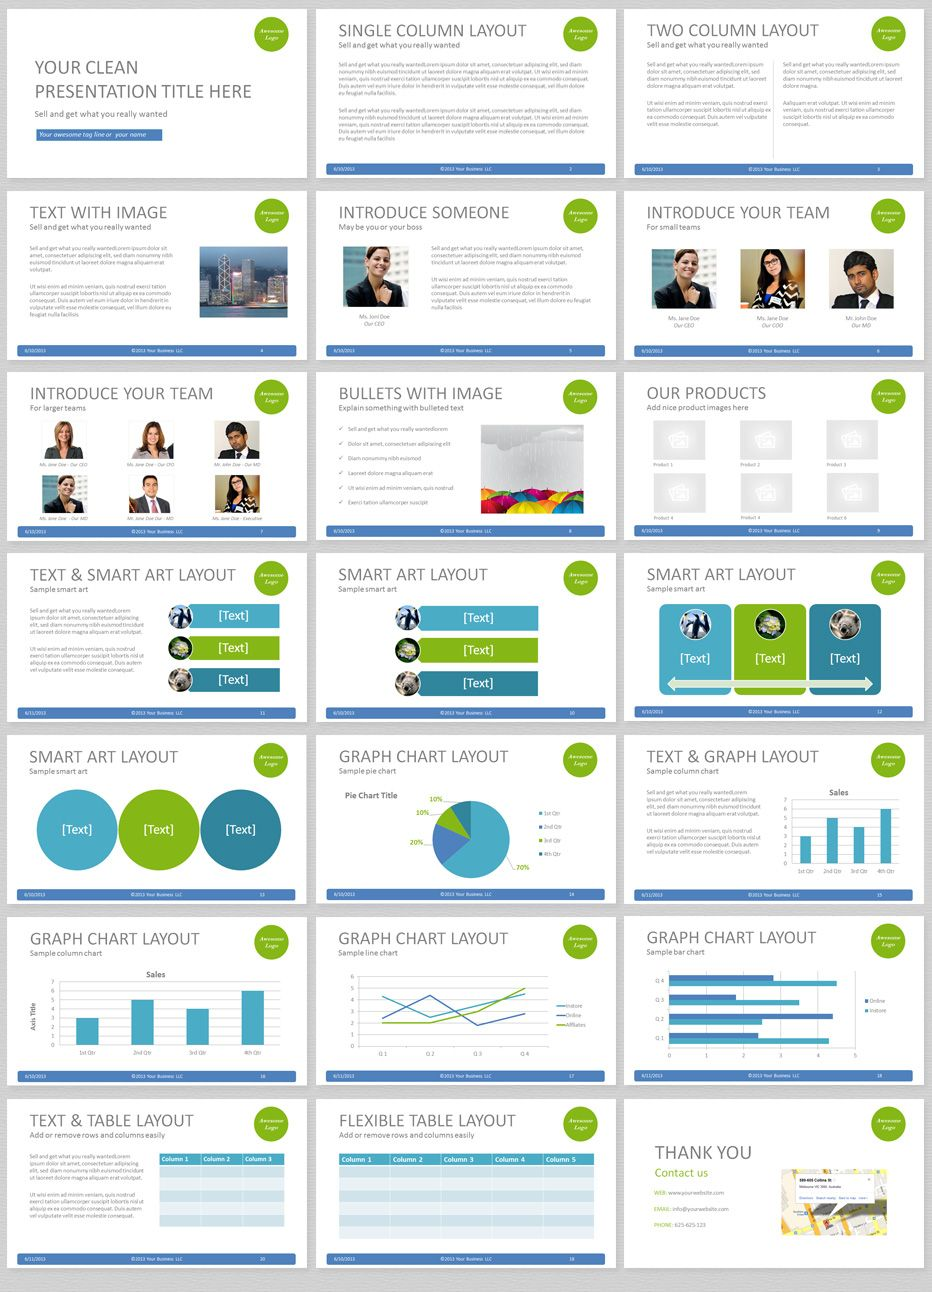 Great This Is Clean Business PowerPoint Template With Easy To Use Professional  Master PowerPoint Slides. View The Predesigned Slides Of This Amazingly  Simple And ...